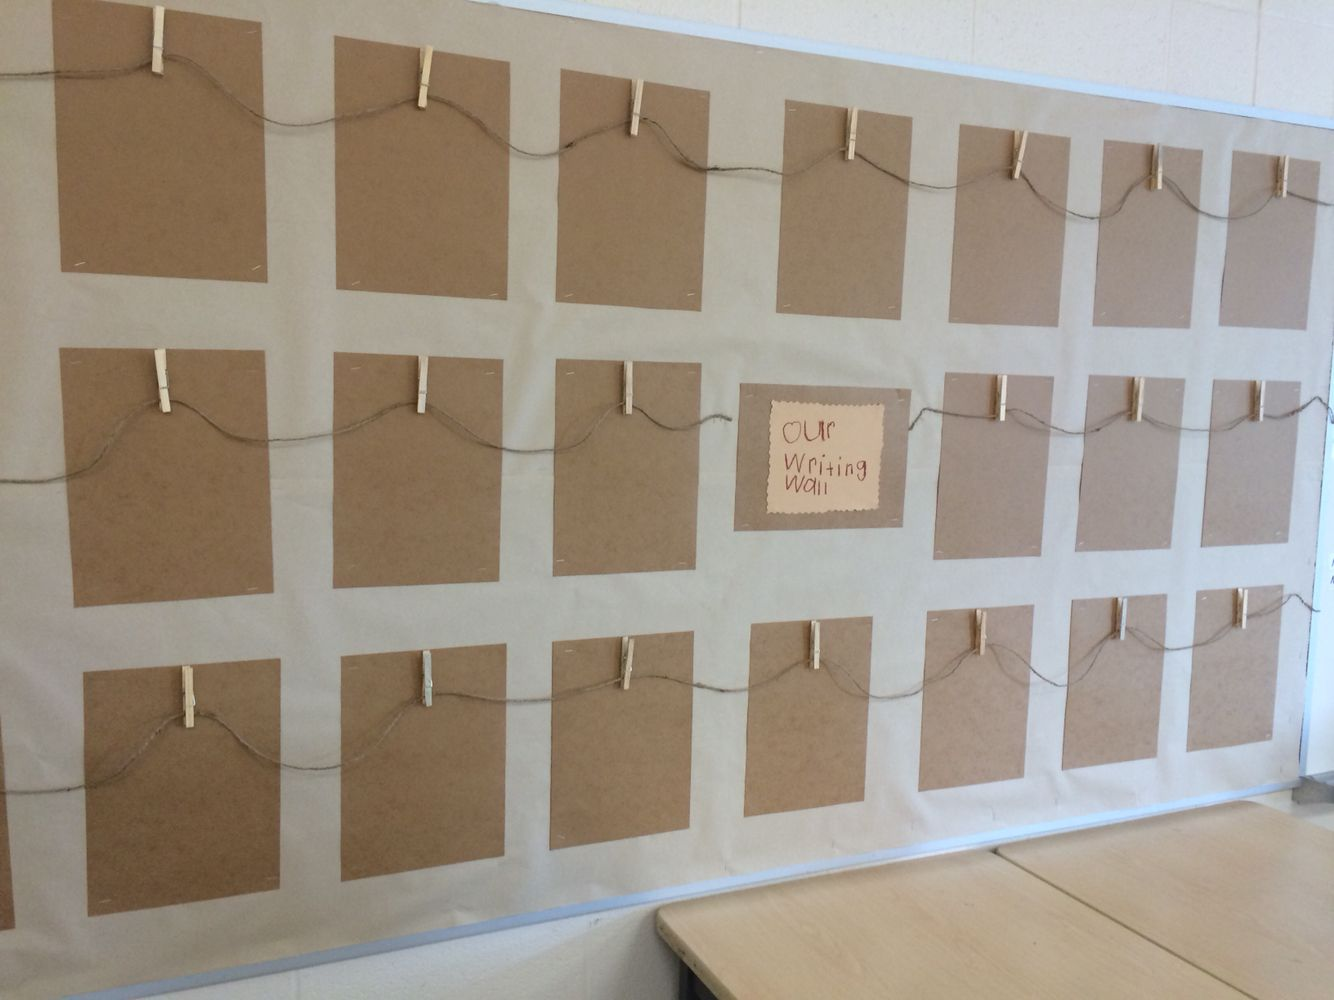 Image Result For Beige Classrooms Walls Bulletin Boards